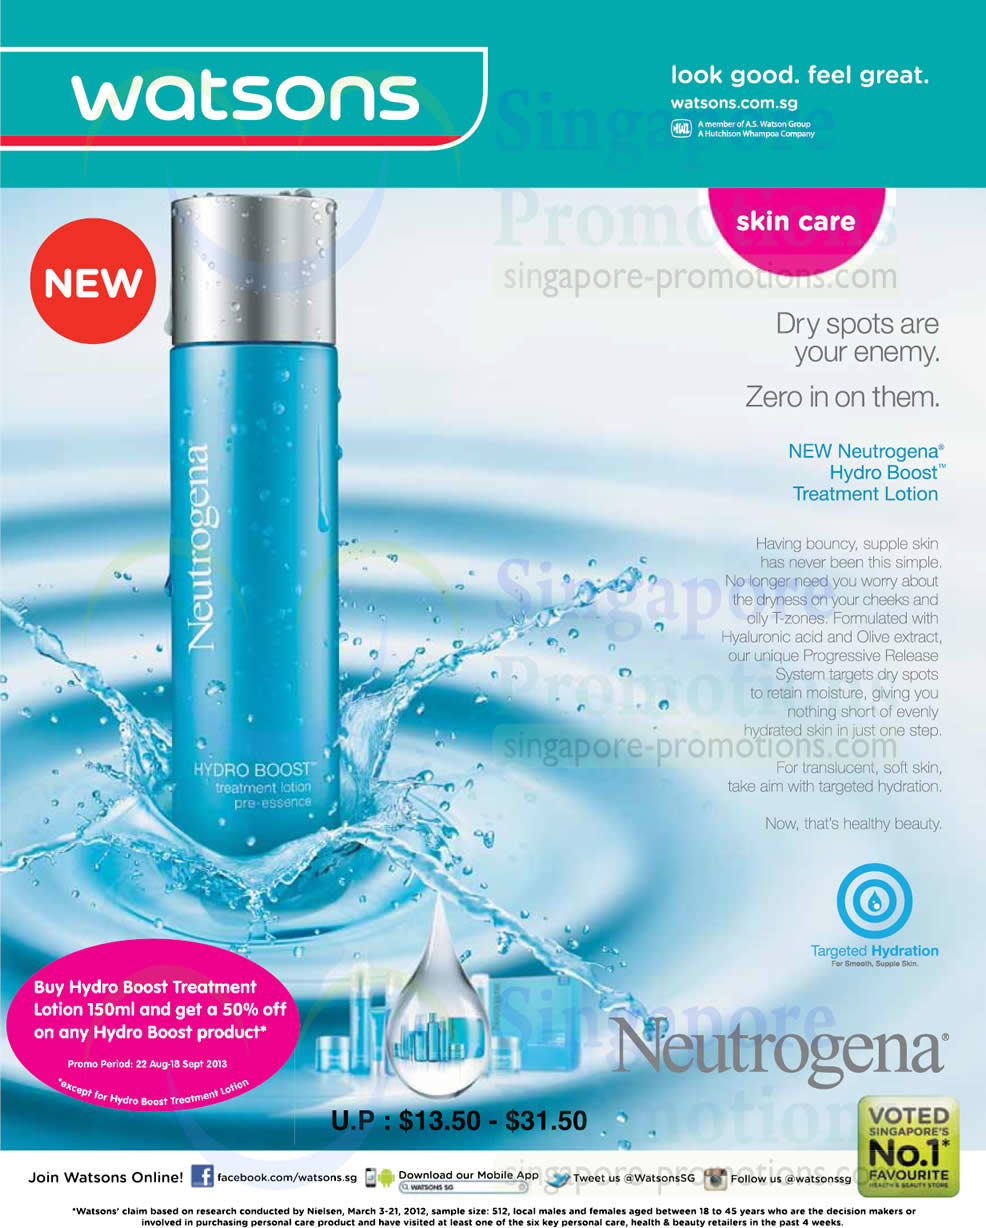 Neutrogena Hydro Boost Treatment Lotion